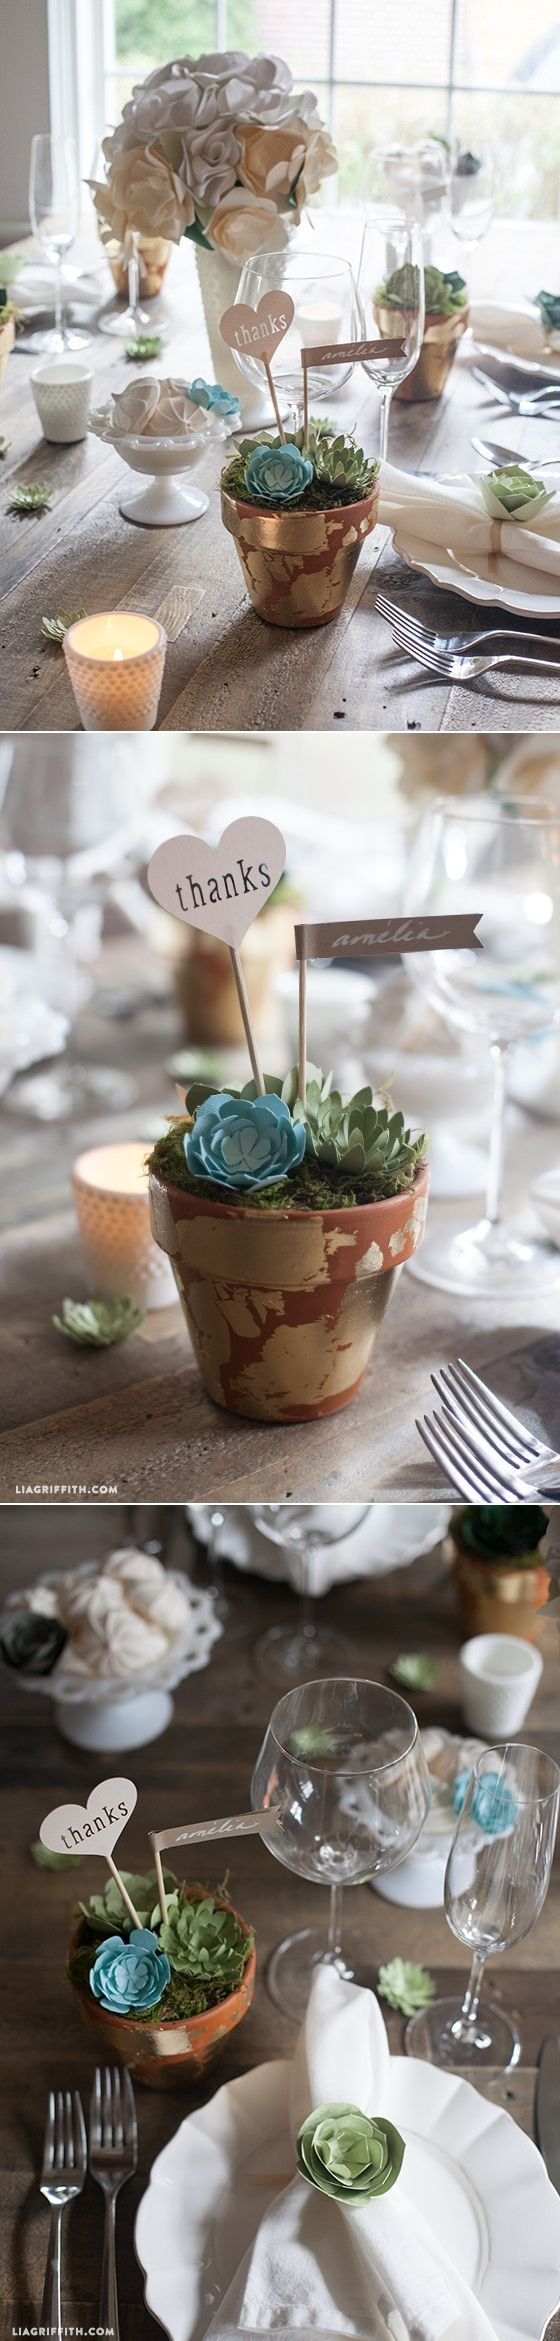 Trend DIY Wedding Favors at LiaGriffith